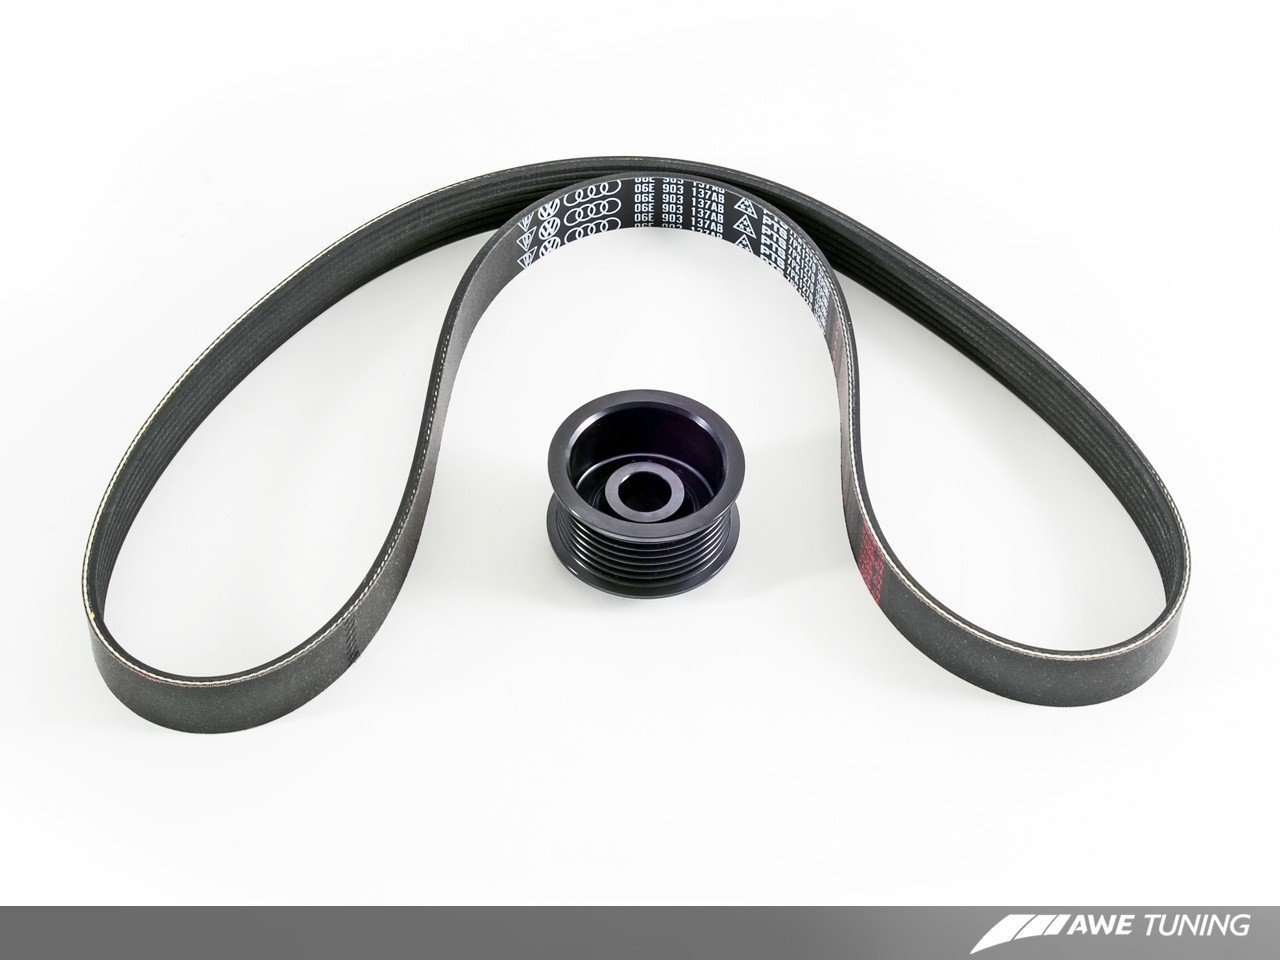 AWE Tuning 2410-11020 B8.5 Stage 2 Performance Pulley Kit